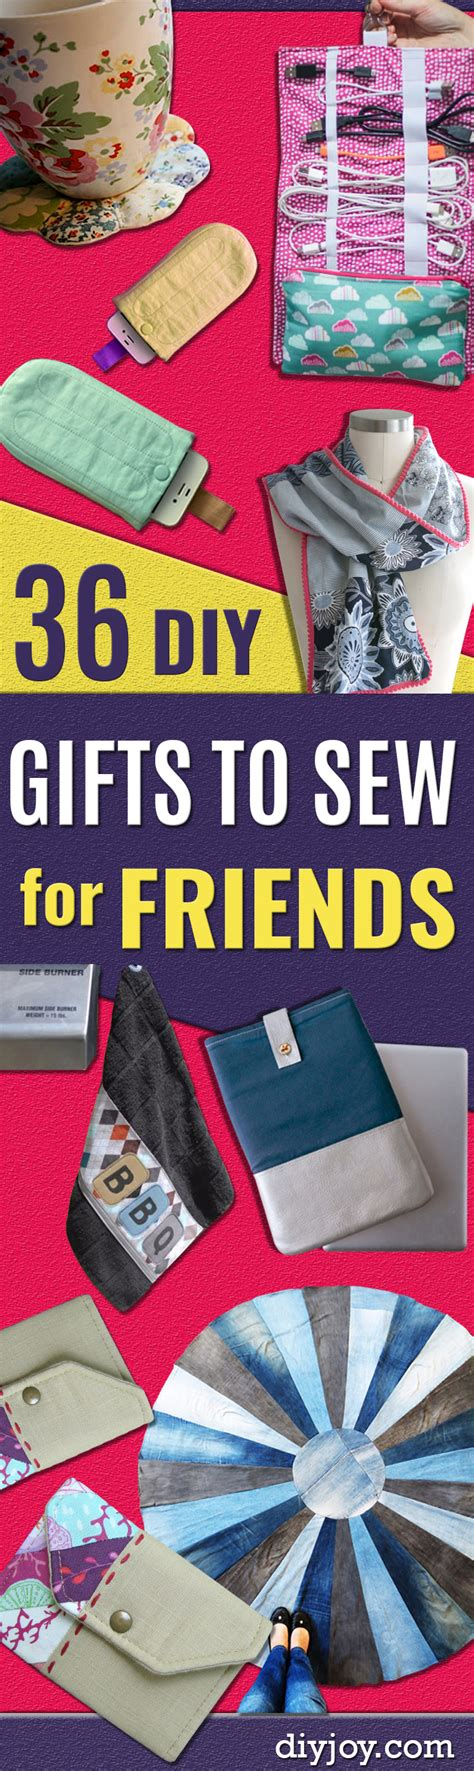 home decorating sewing projects 7 quick and easy no sew 36 creative diy gifts to sew for friends diy joy